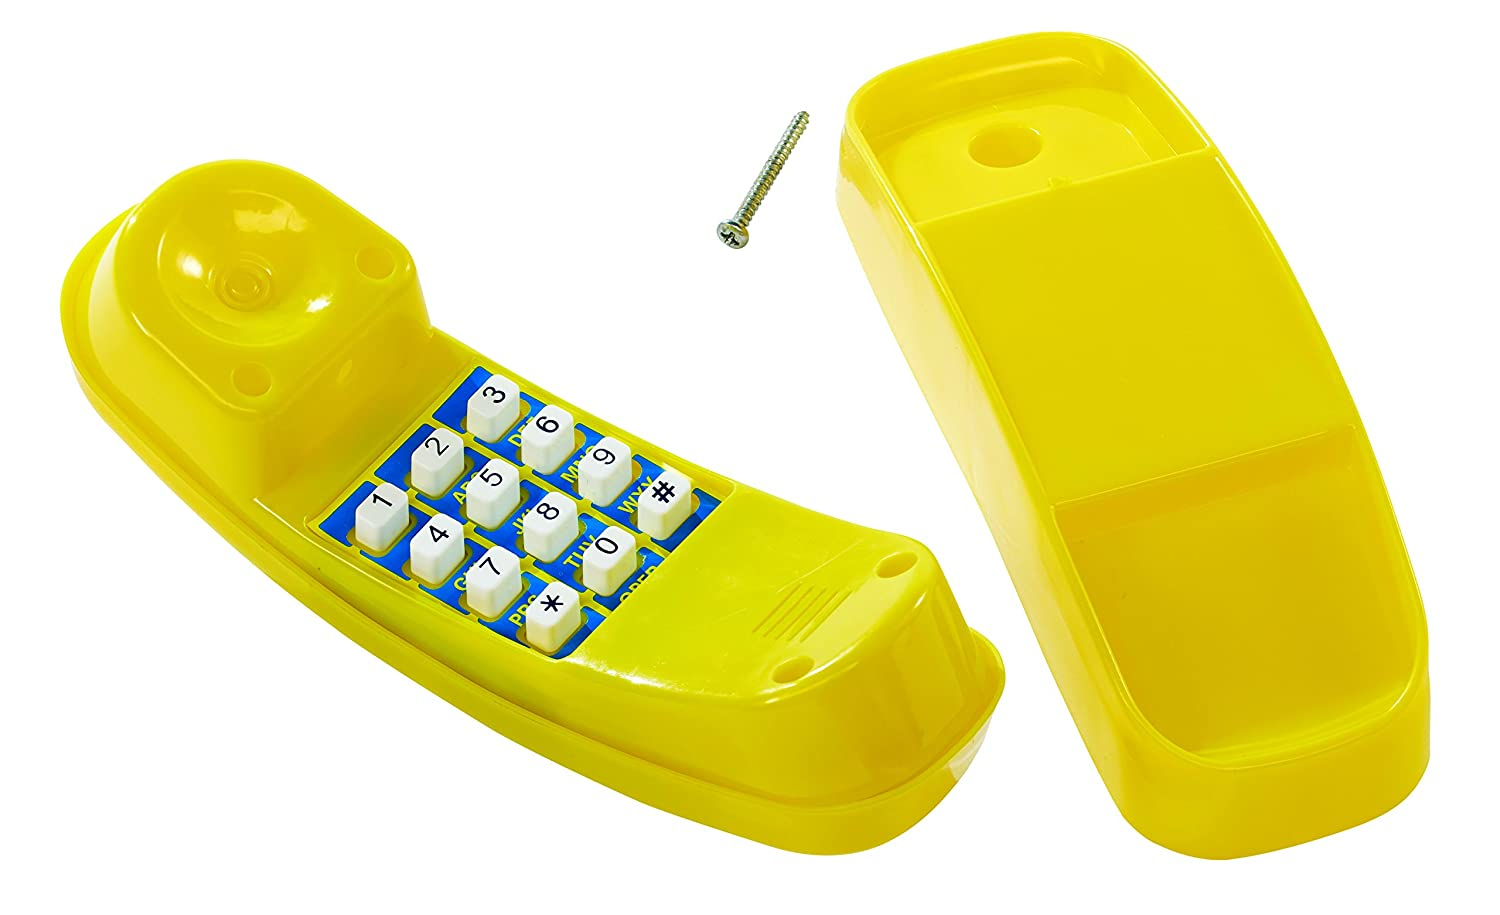 Telephone With Sounds For Kids Climbing Frames or Tree Houses - Yellow. Little Duck Bear Ltd